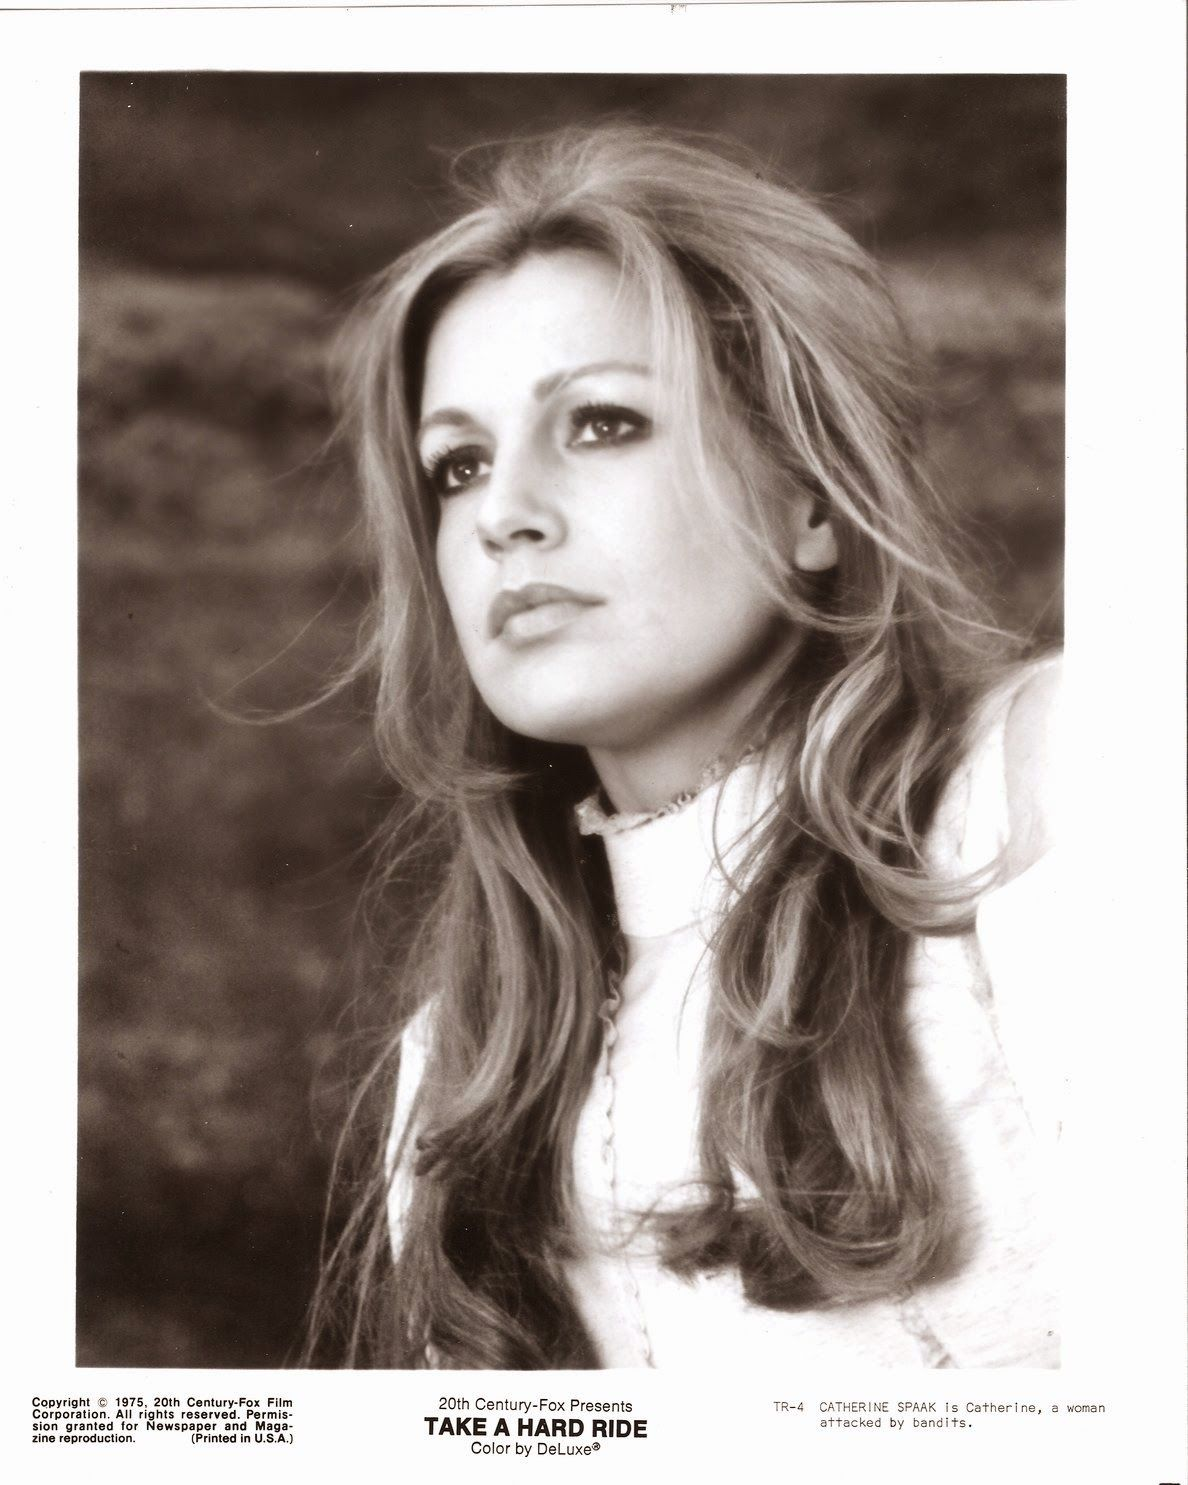 Communication on this topic: Rosalind Marquis, catherine-spaak/